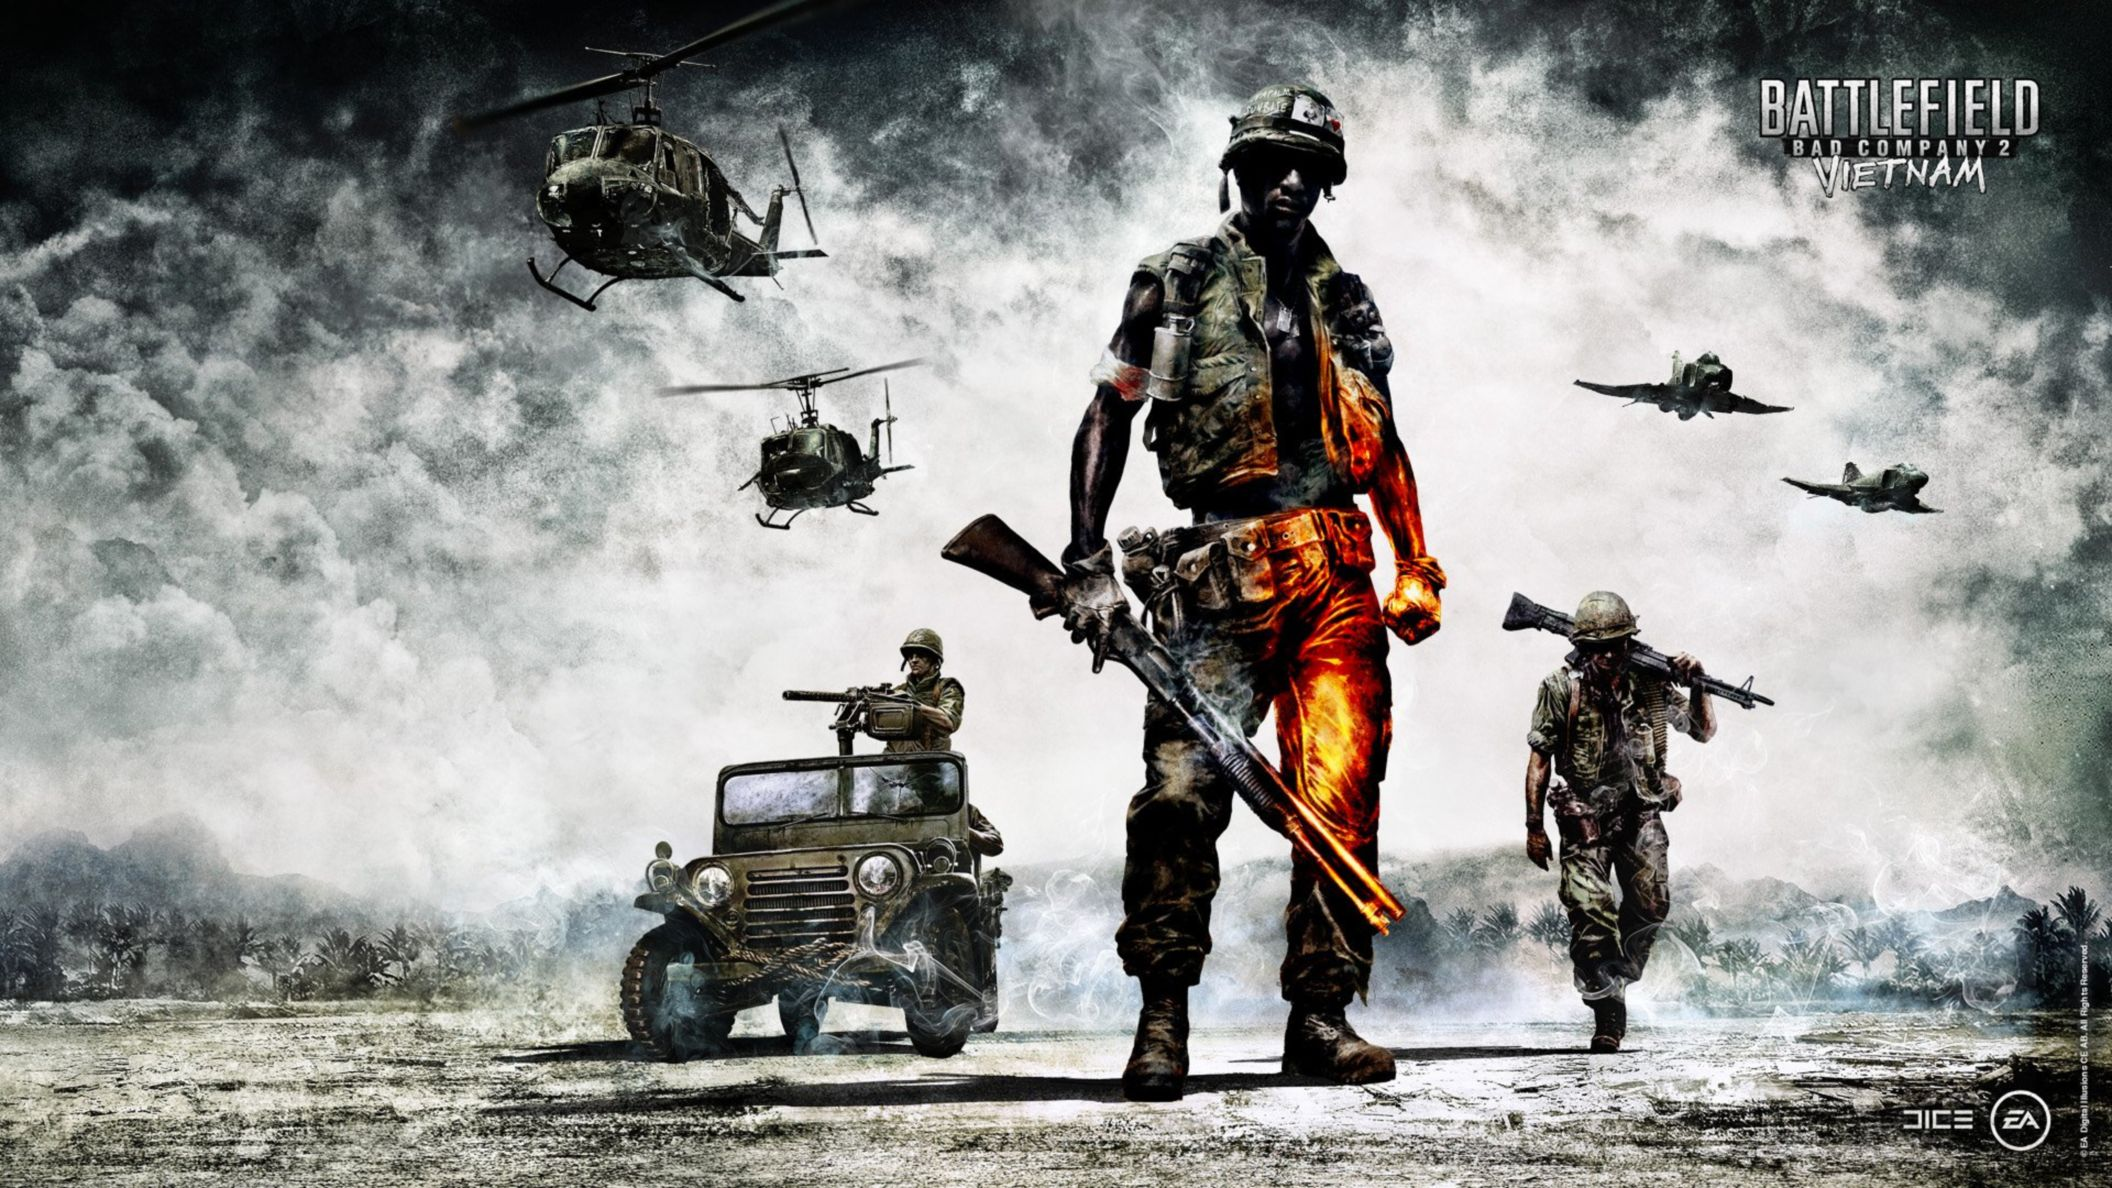 Download free HD Battlefield Bad Company 2 Vietnam HD Wallpaper, image